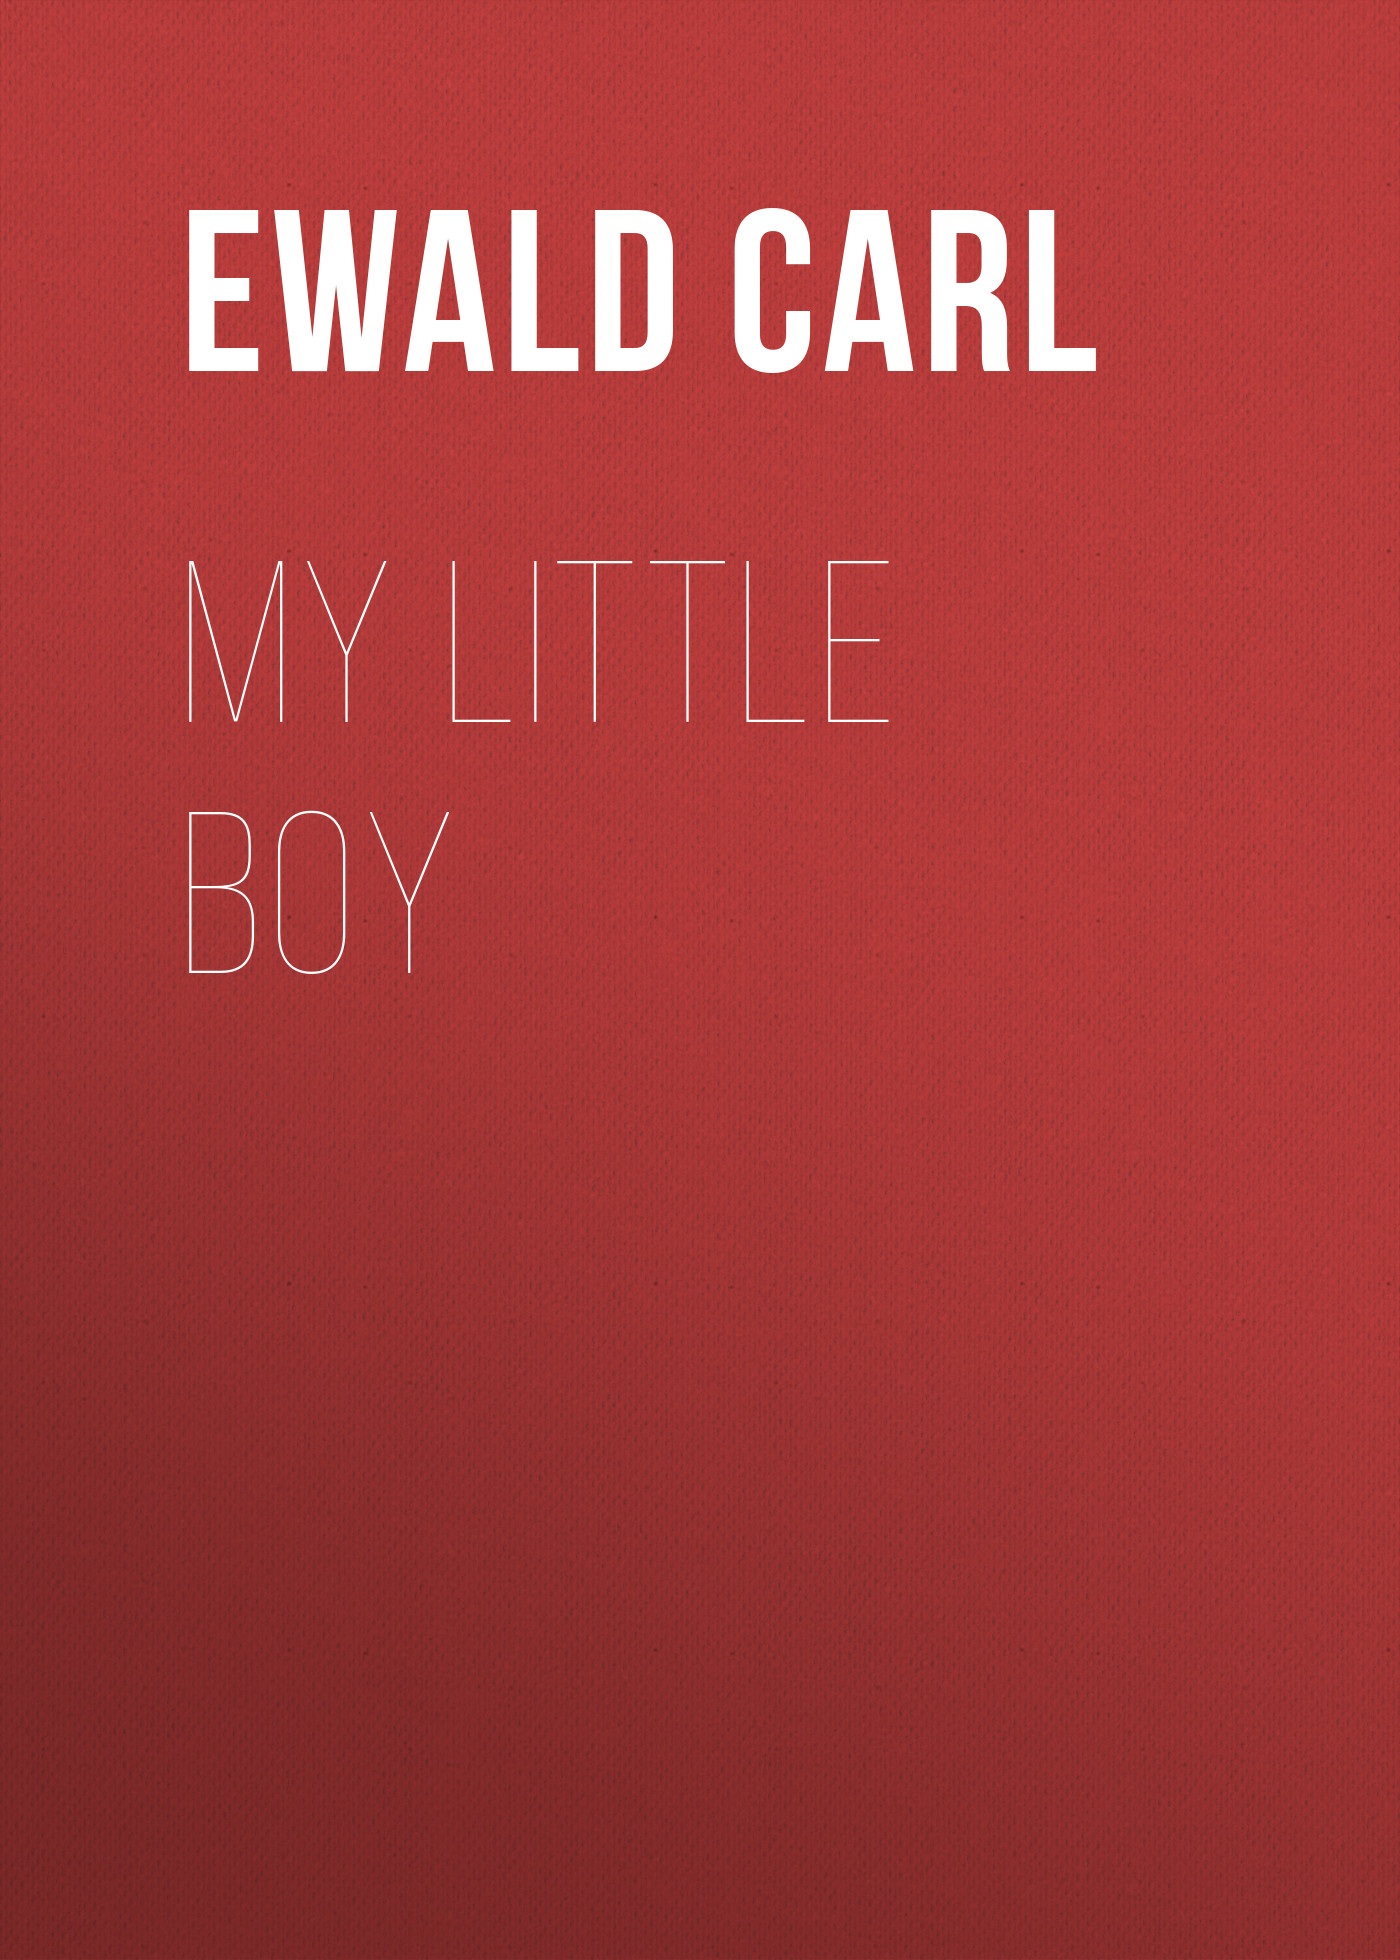 лучшая цена Ewald Carl My Little Boy